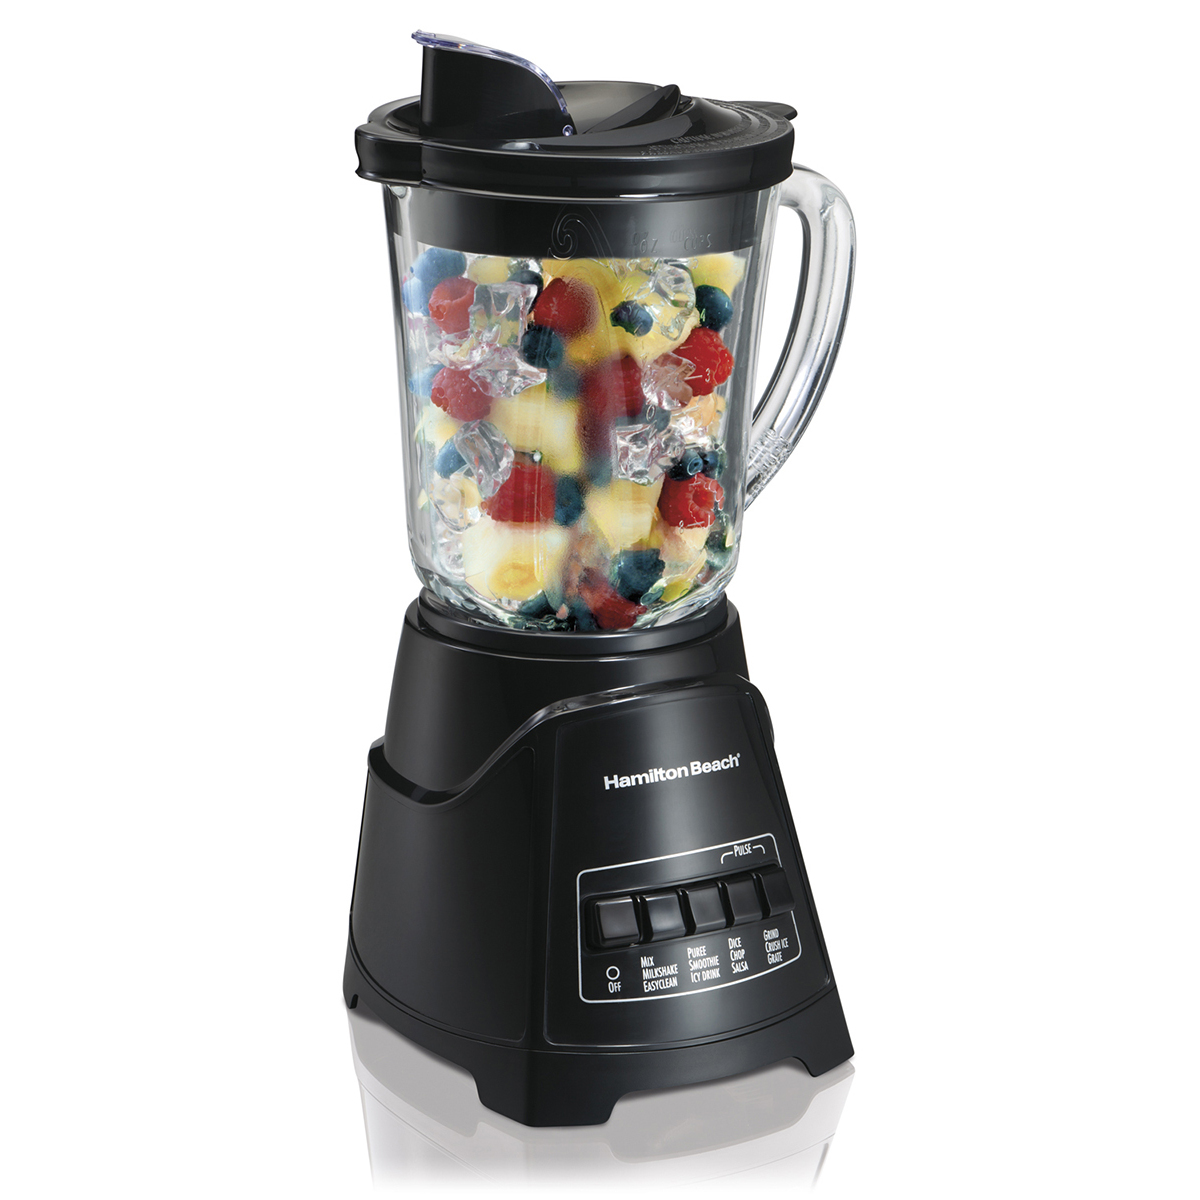 Power Elite Multi-Function Blender (58146)